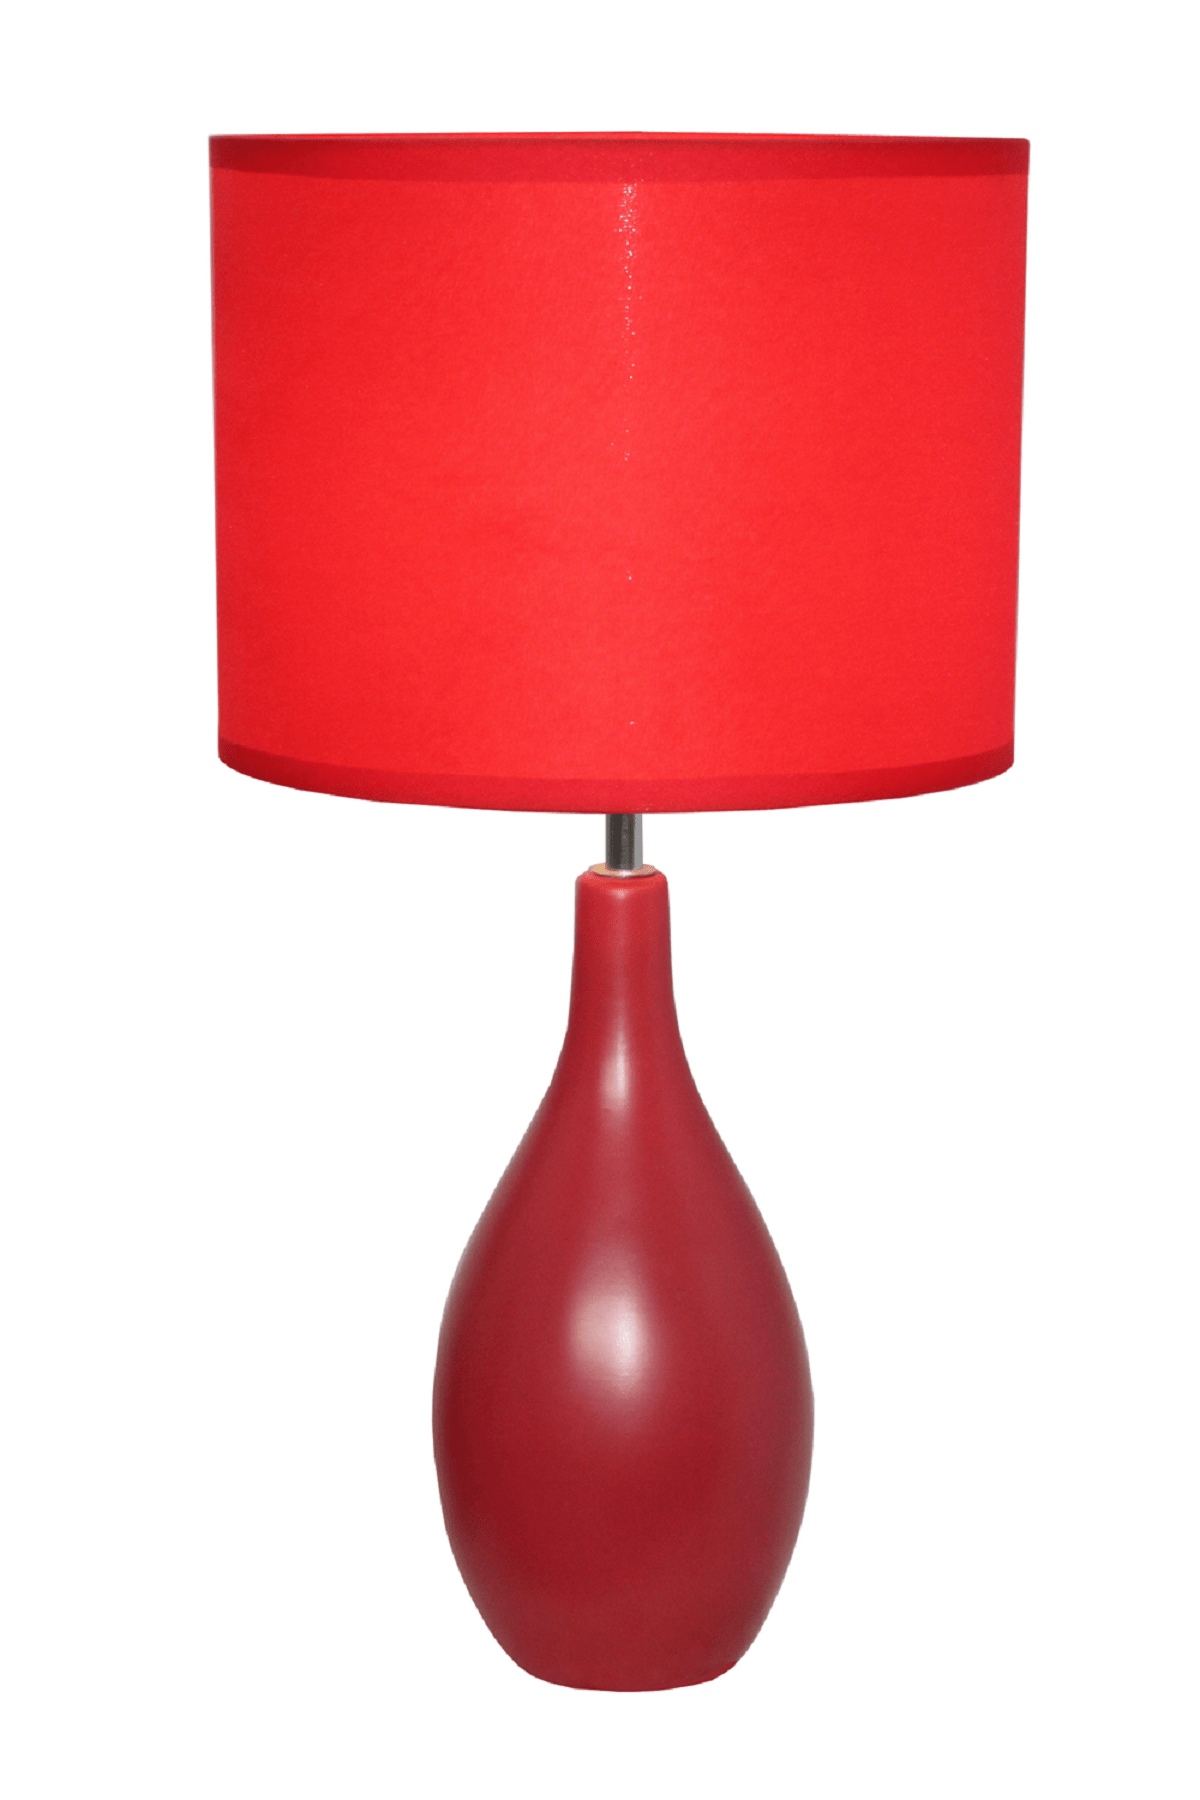 Red And White Table Lamp Simple Designs Red Oval Base Ceramic Table Lamp Home